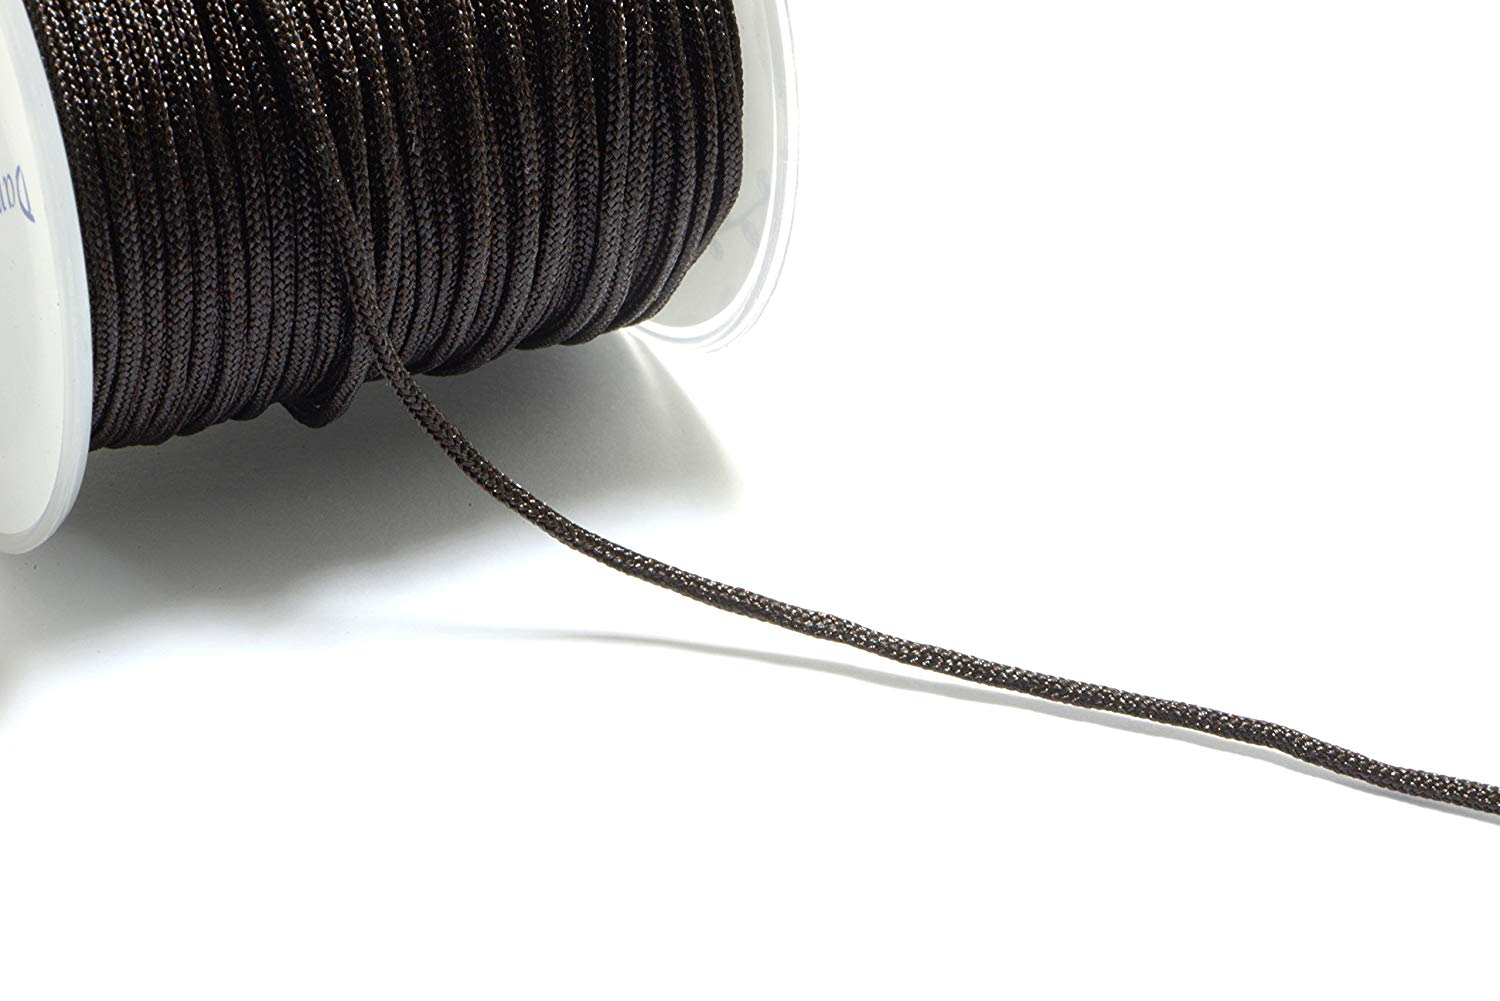 30m (98.4ft) (32.8 yards) 1.5mm Nylon Cords in Dark Brown, Chinese Knotting Cord, Spooled, Beading String for Beads #SD-S7755